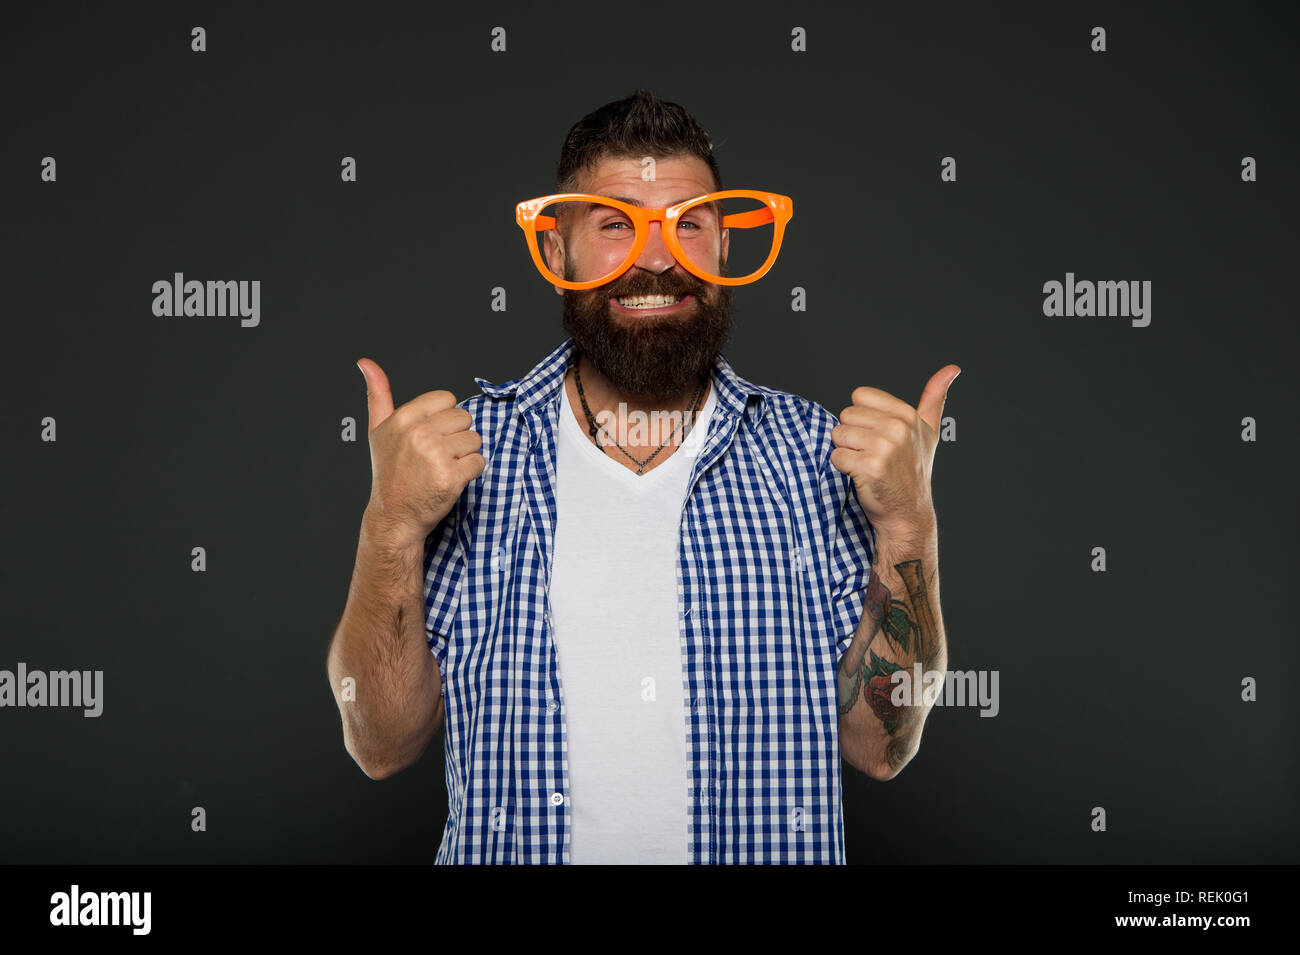 Human strengths and virtues. Positive mood. Positive psychology. Overcome life troubles with smile. Happiness and positive. Stay positive. Man brutal bearded hipster wear funny eyeglasses accessory. - Stock Image